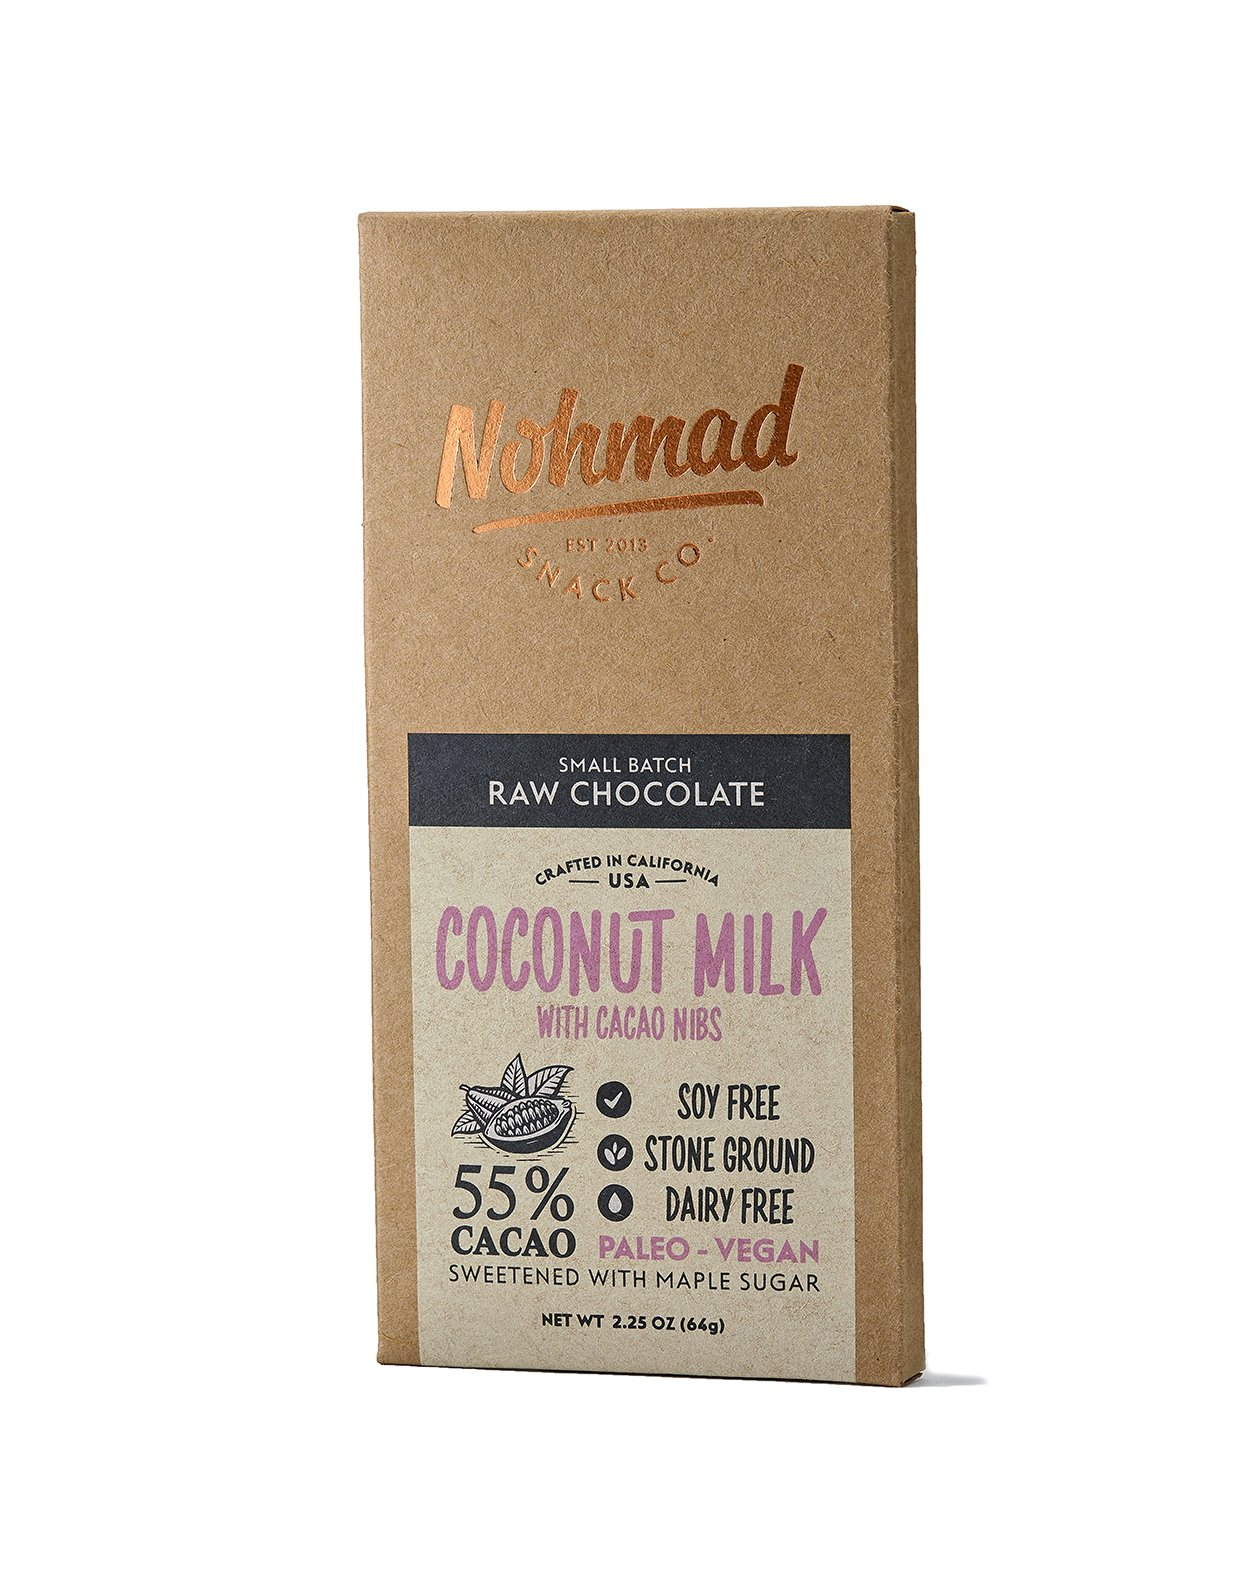 Nohmad Snack Co - Raw Chocolate - Coconut Milk w/Cacao Nibs - 55% Cacao - Vegan Friendly (2 pack)